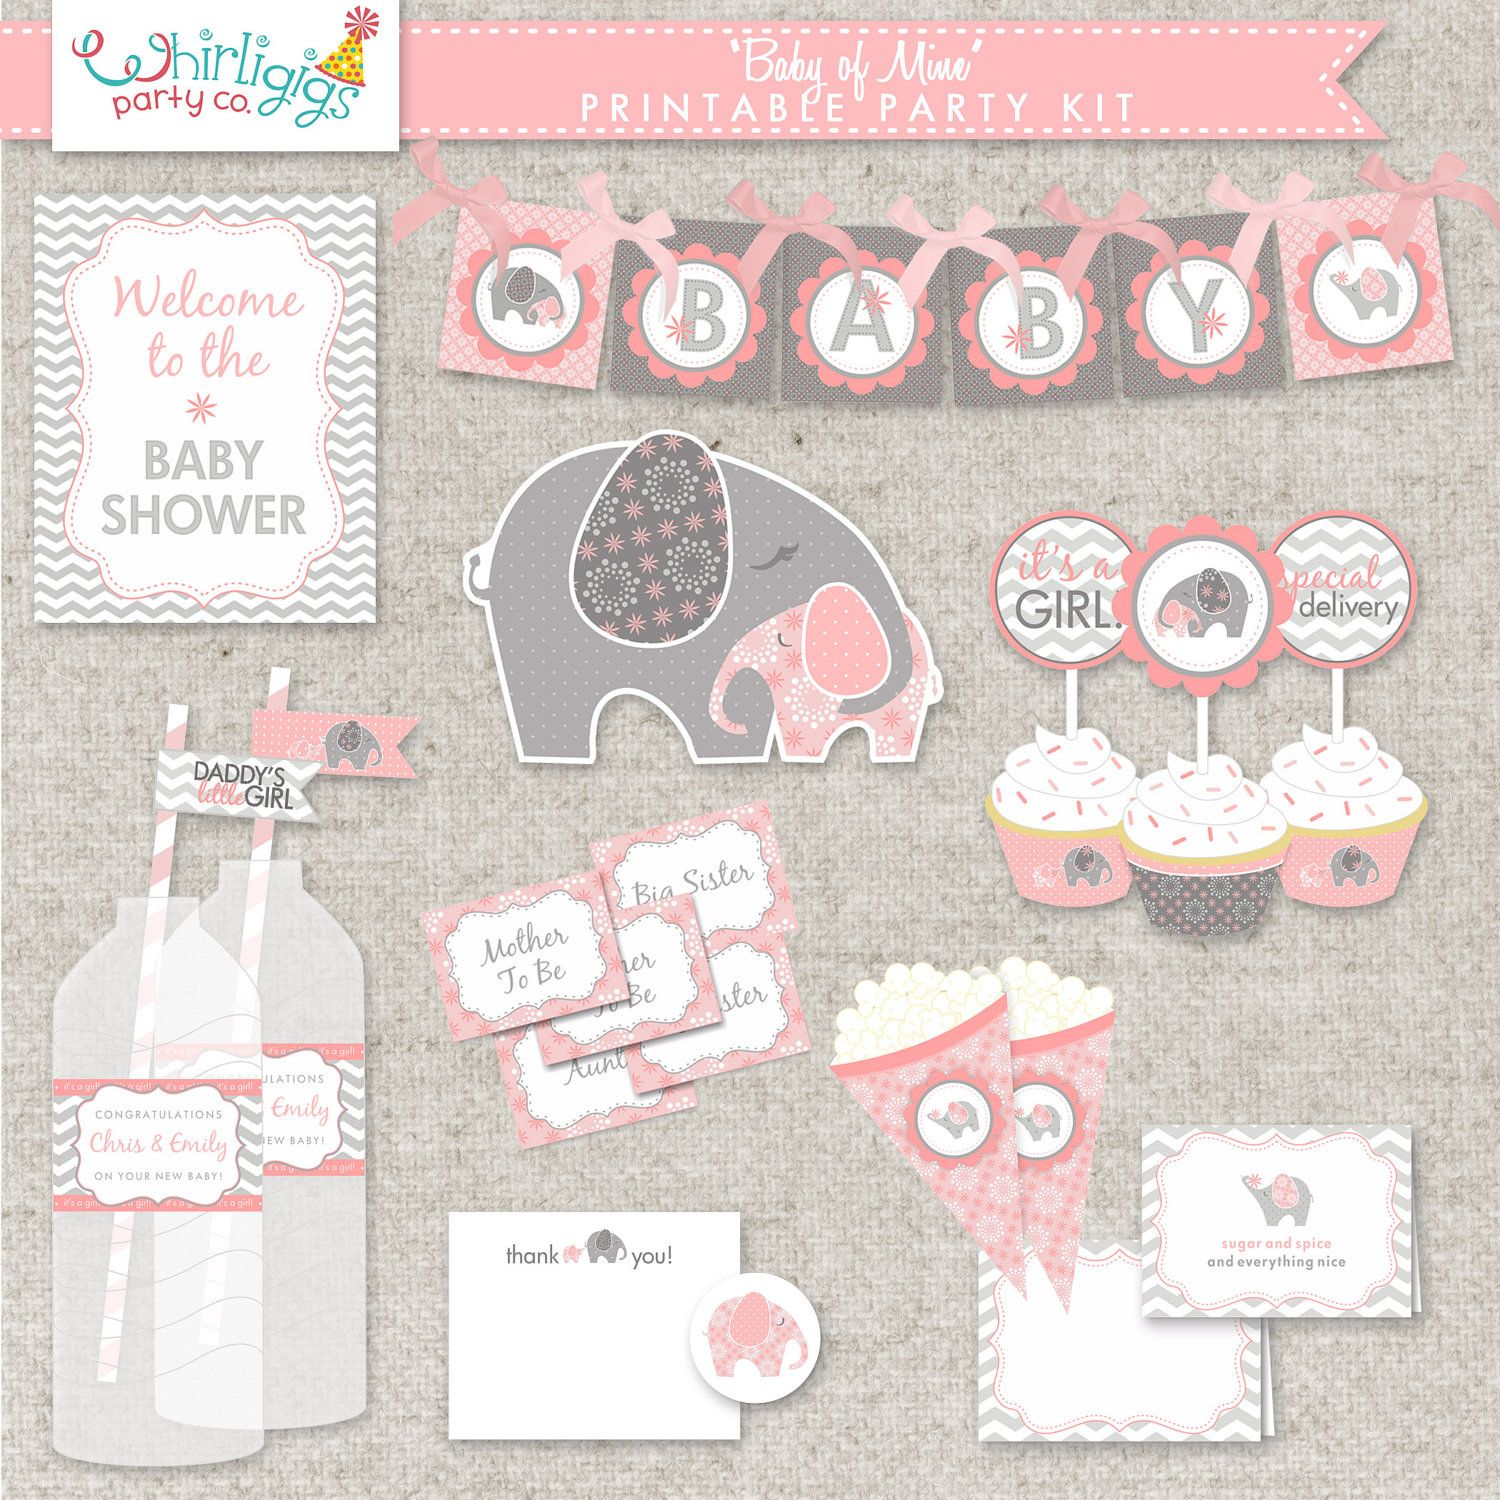 Diy Elephant Baby Shower Printable Party